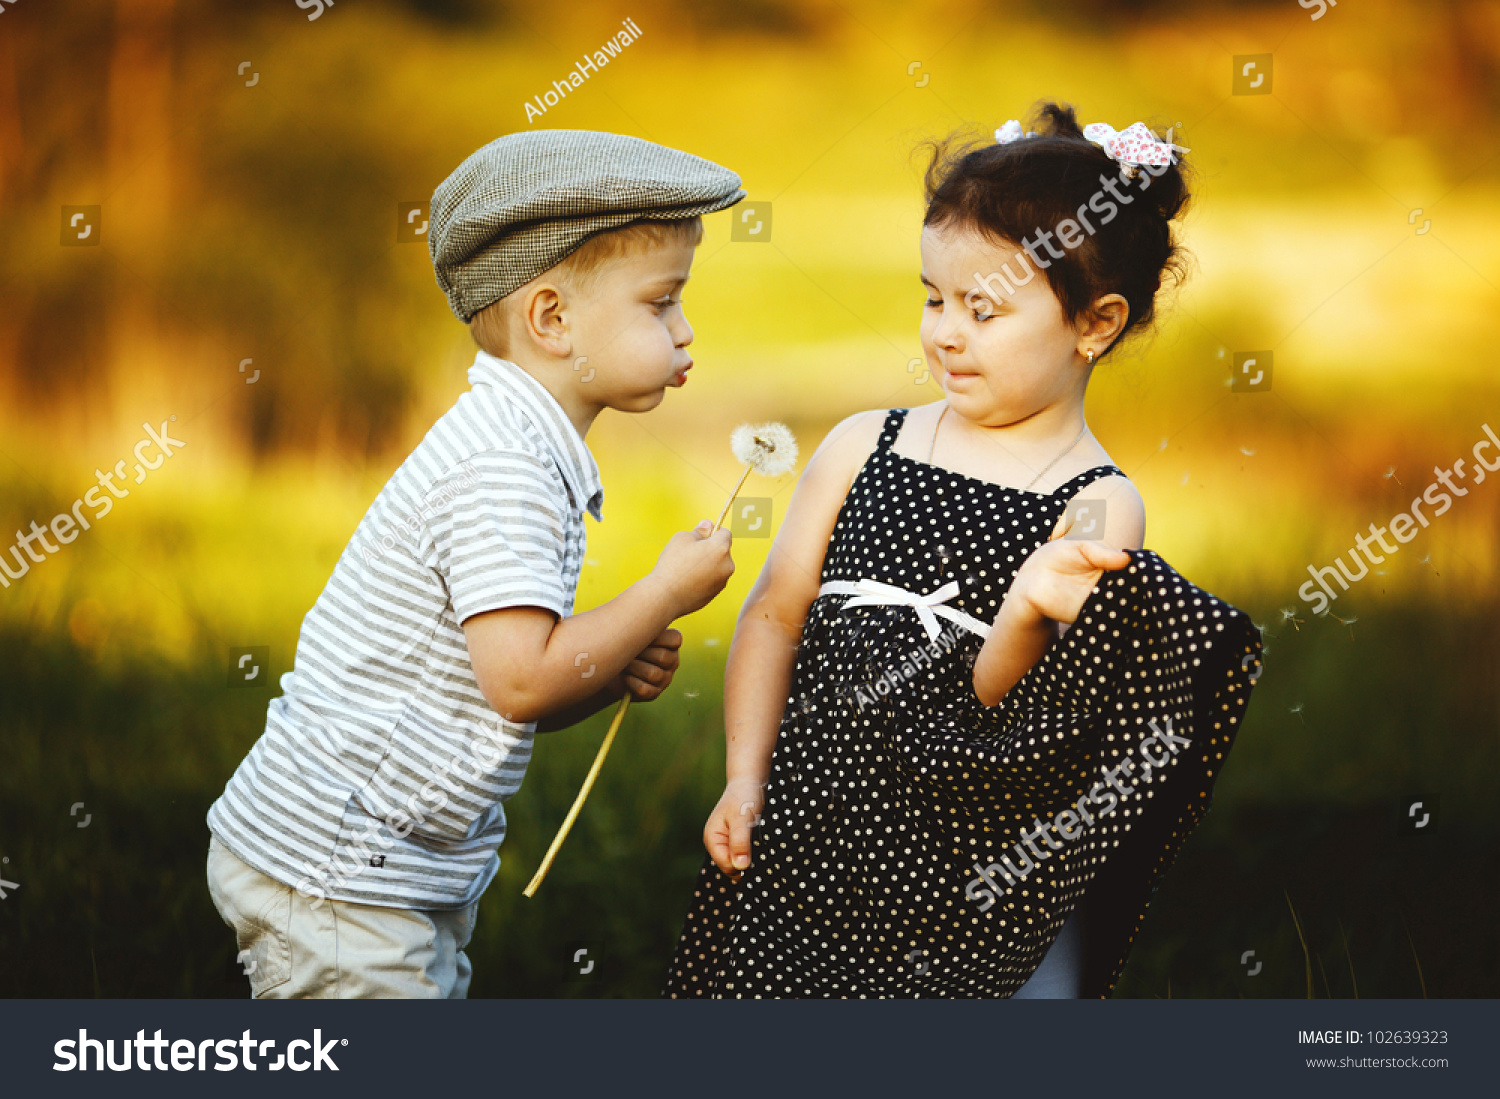 cute boy girl stock photo (100% legal protection) 102639323